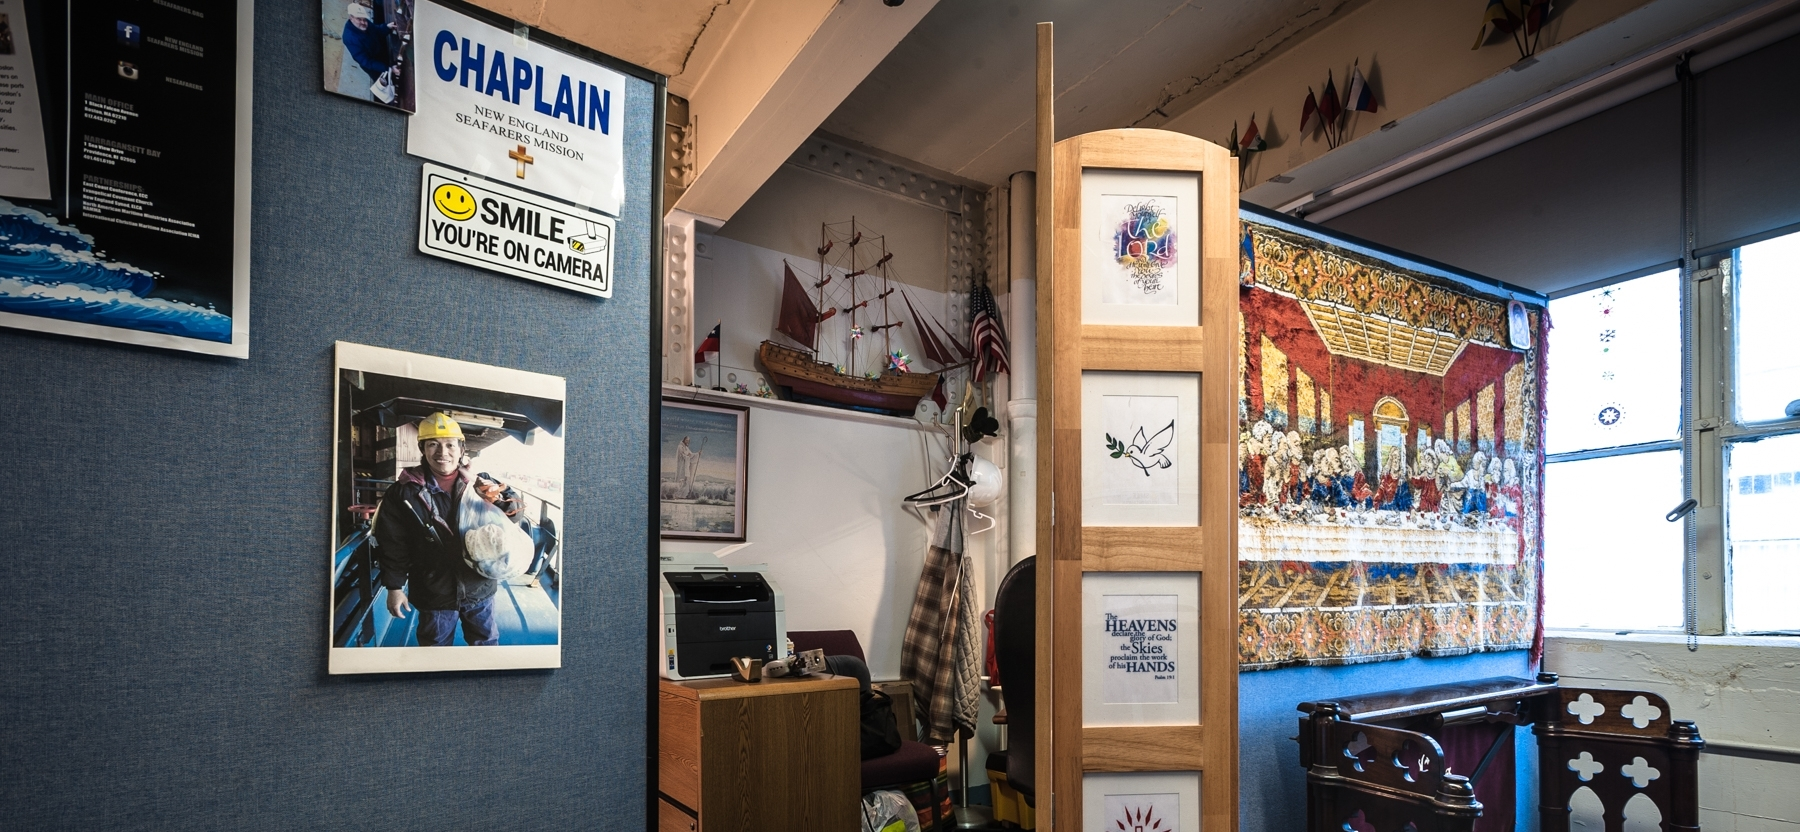 A kneeler, privacy screen and tapestry form the simple sacred space at New England Seafarers Mission